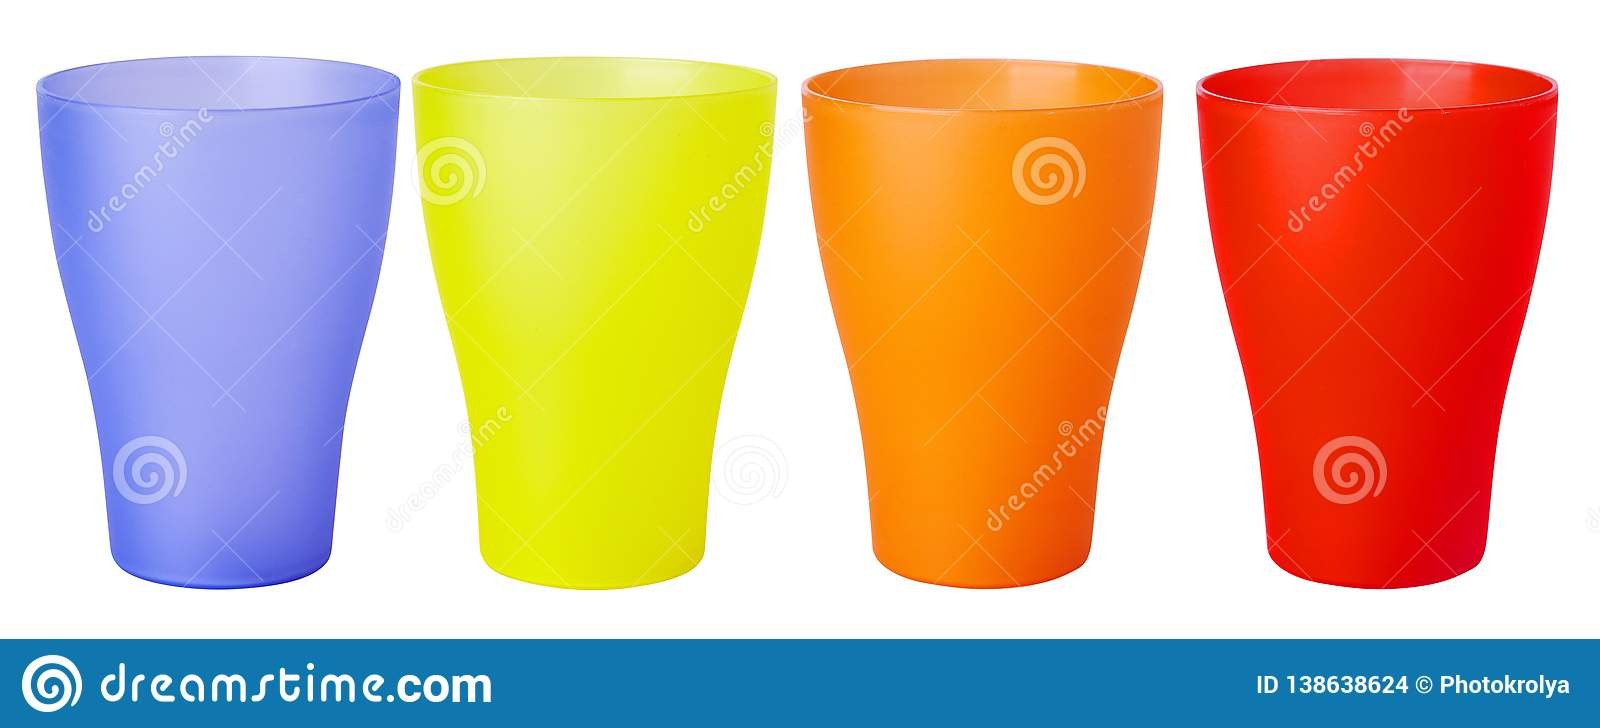 Colorful plastic glass for picnic isolated on white background